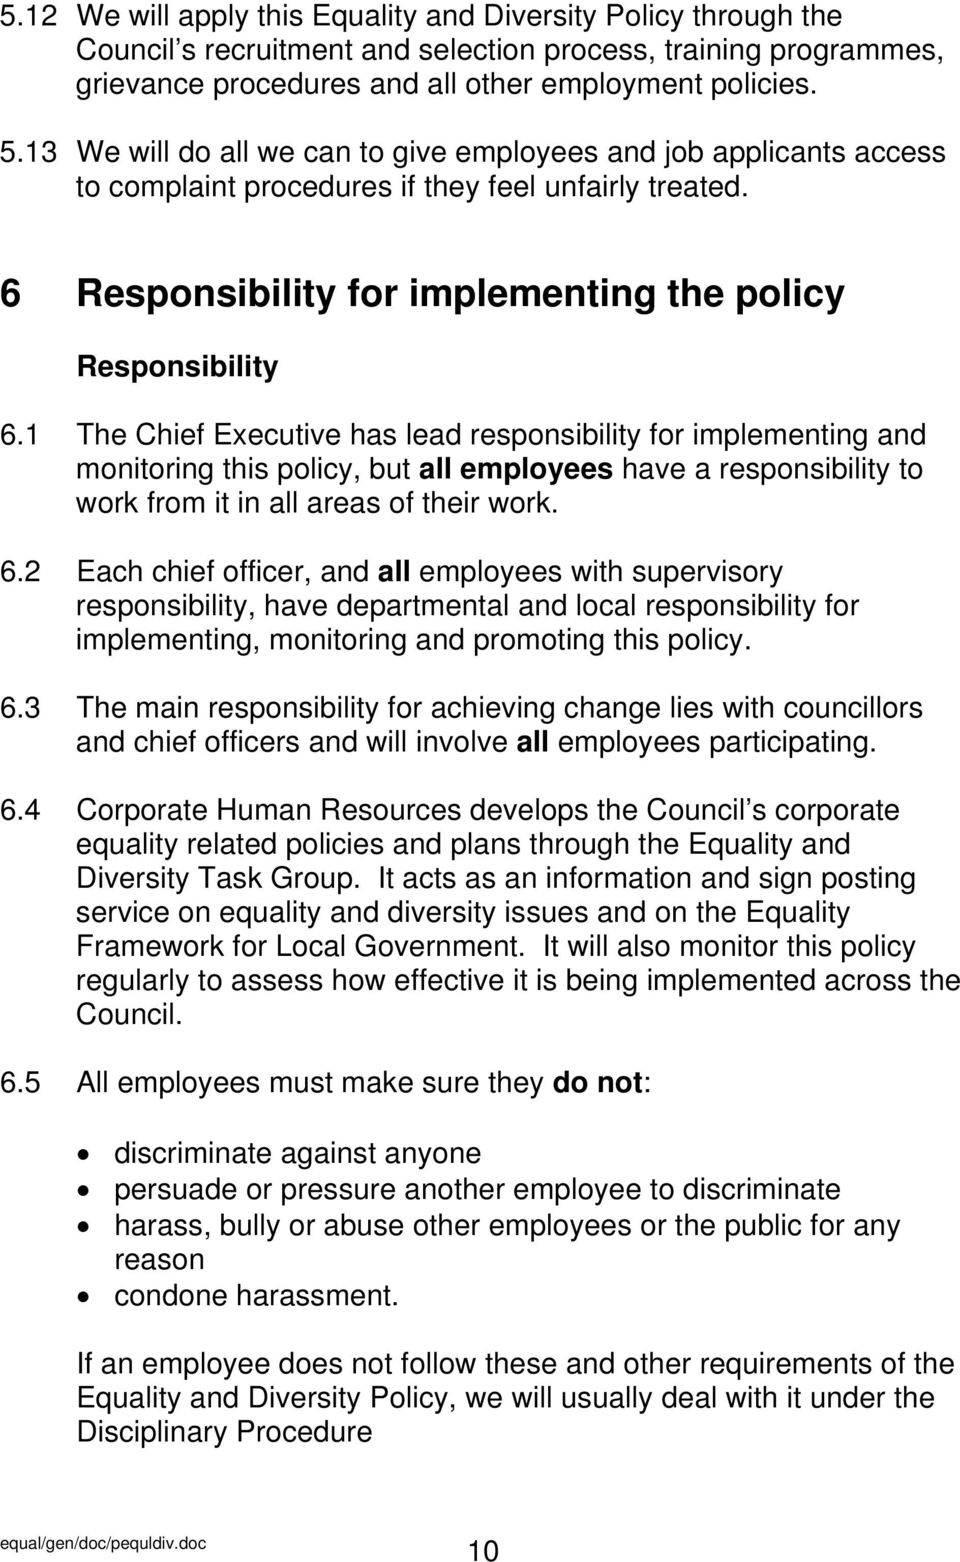 1 The Chief Executive has lead responsibility for implementing and monitoring this policy, but all employees have a responsibility to work from it in all areas of their work. 6.